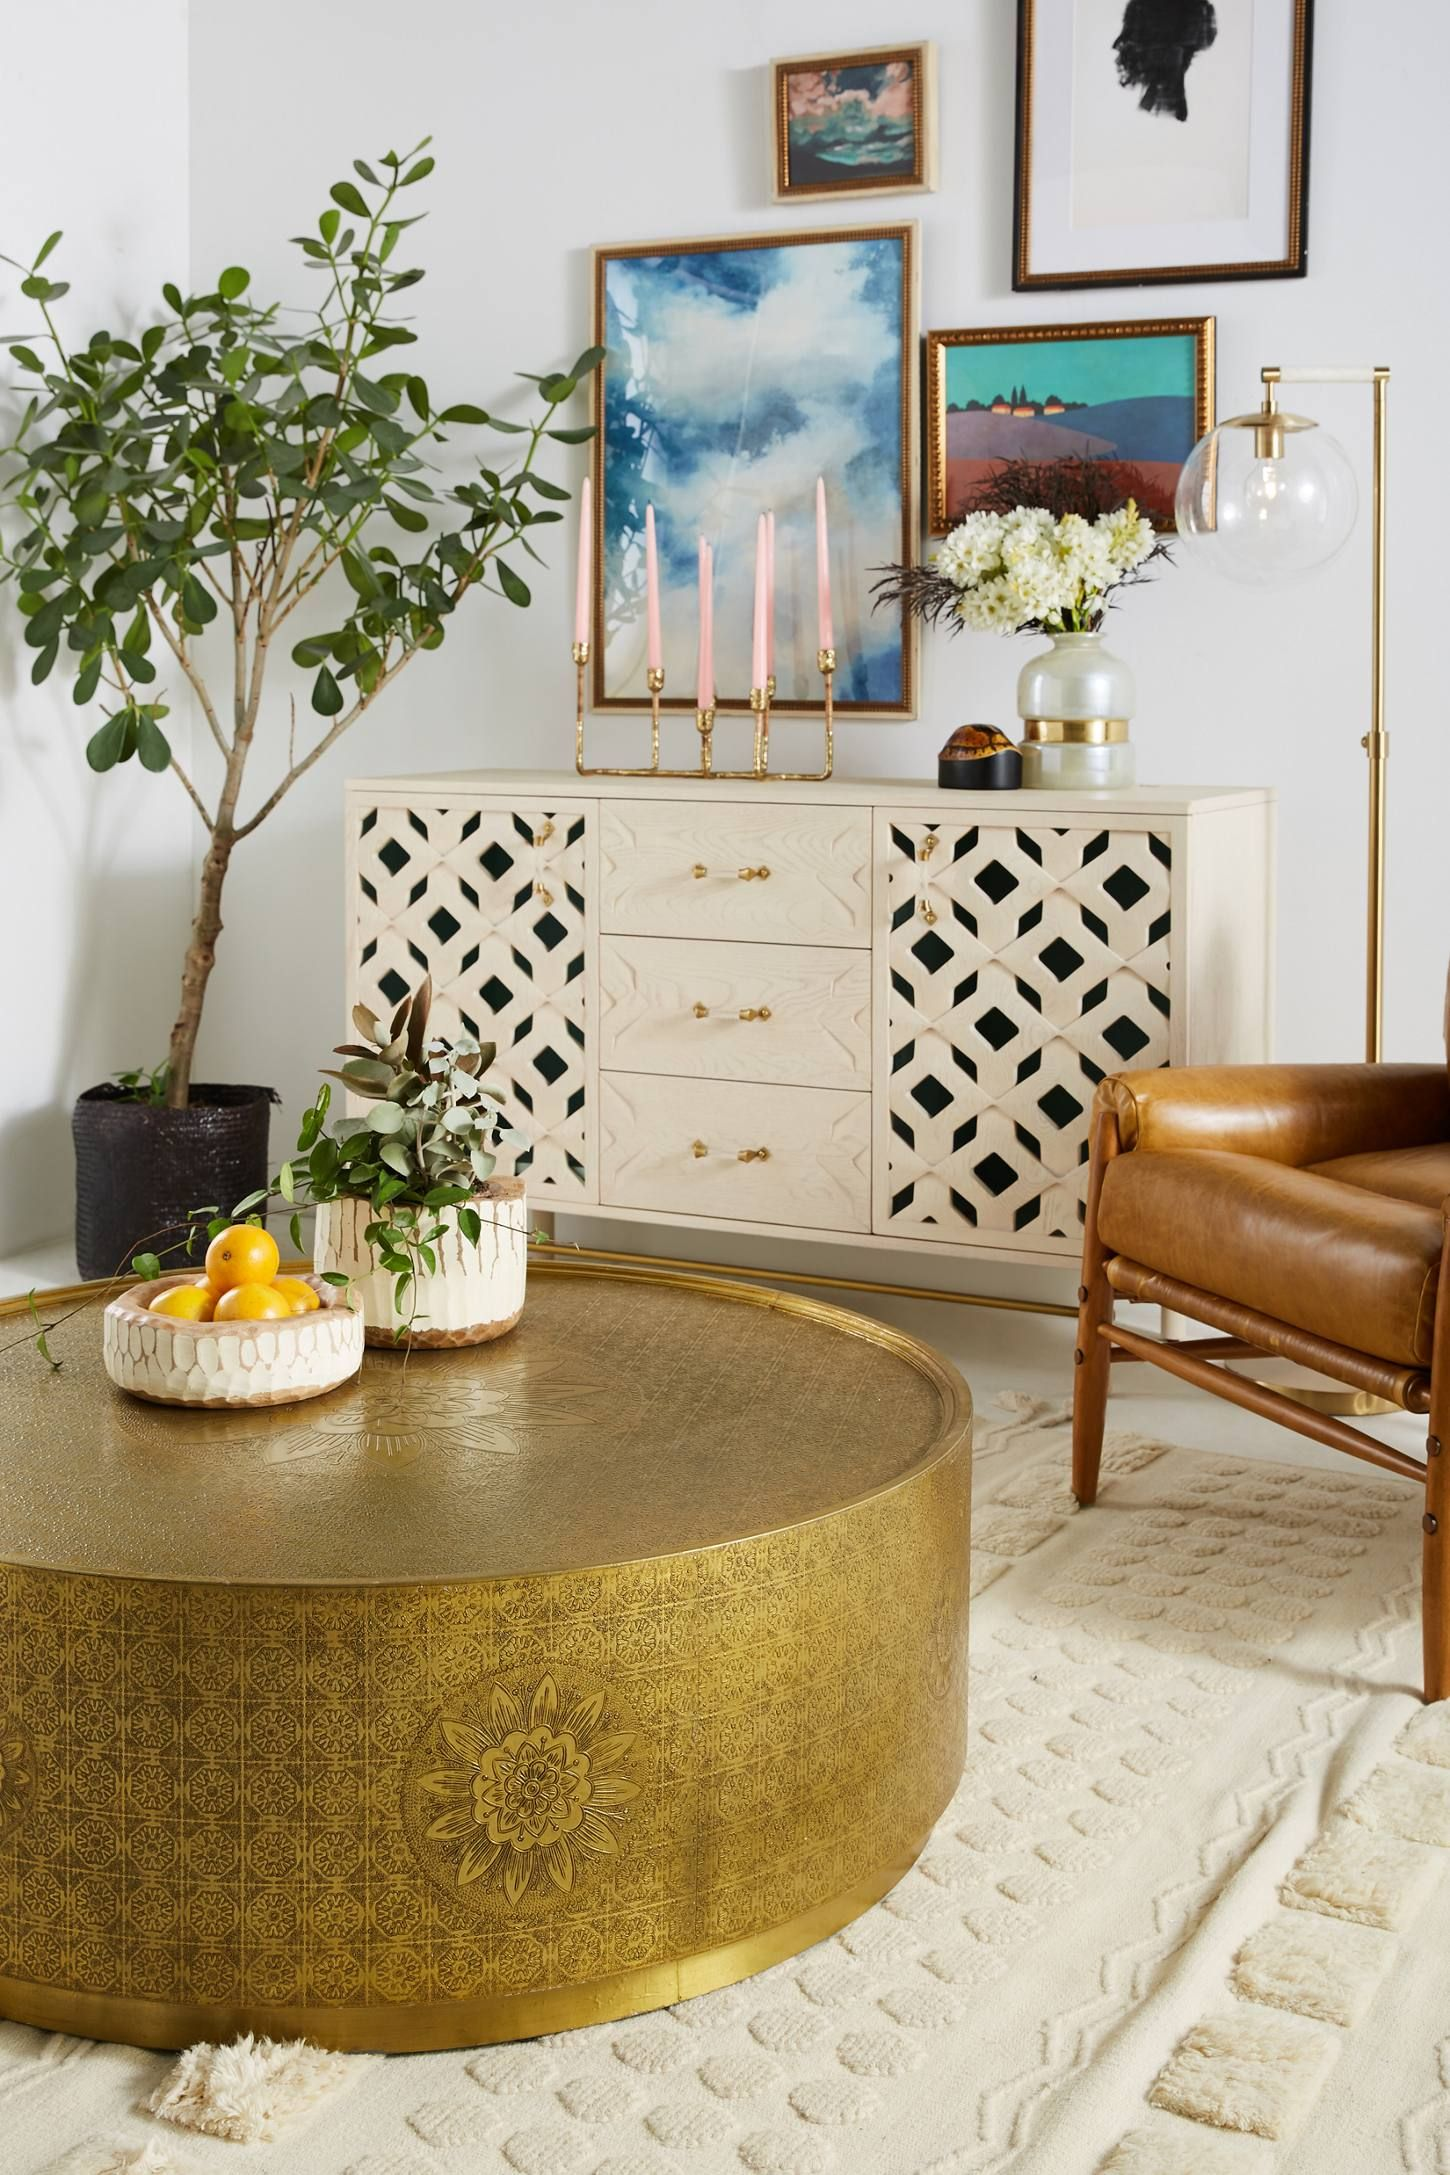 Shop The Embossed Cisse Coffee Table And More Anthropologie At  Anthropologie Today. Read Customer Reviews, Discover Product Details And  More.